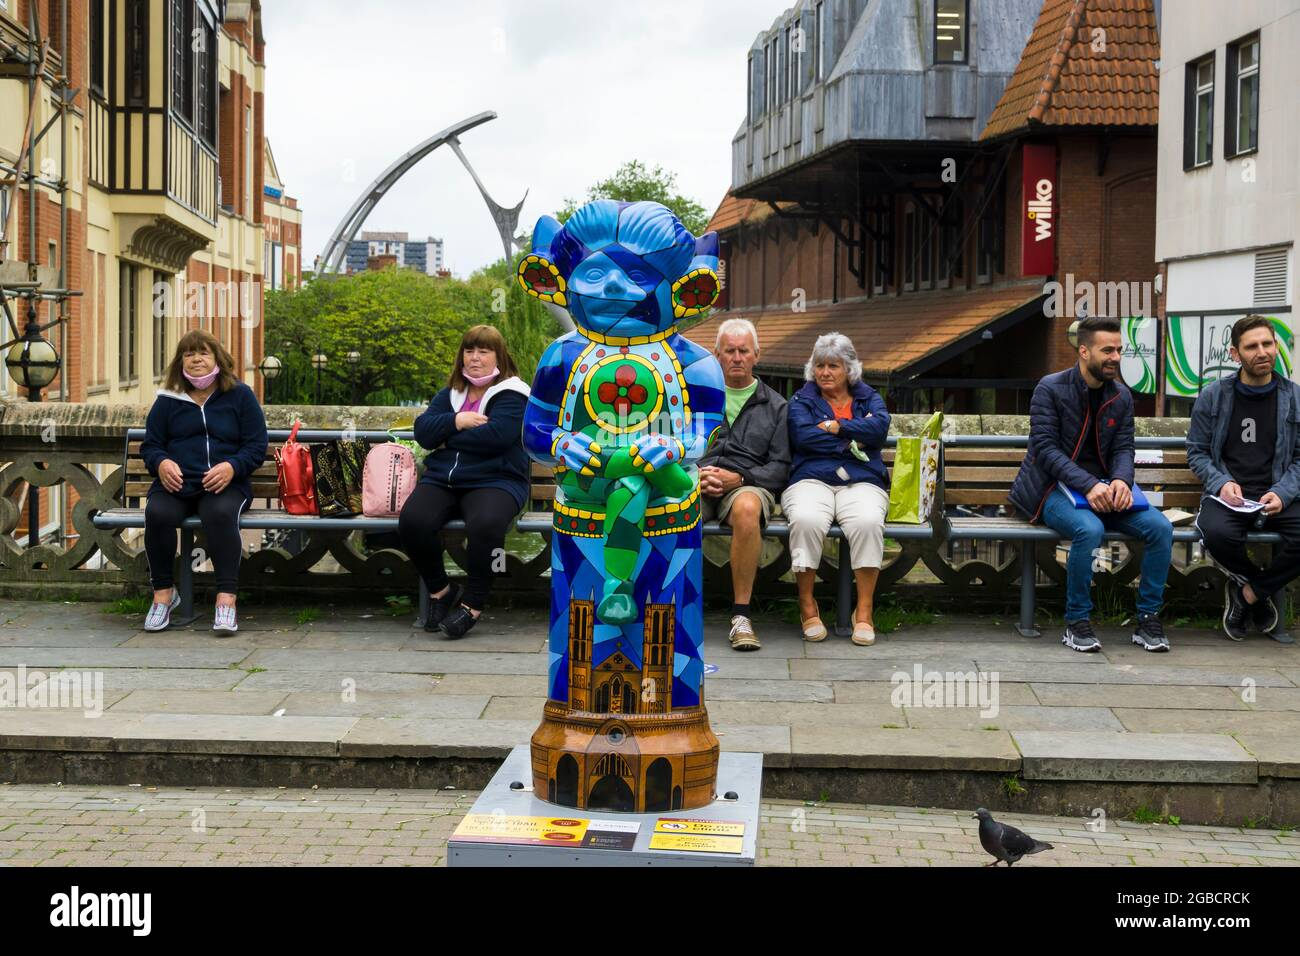 decorated-lincoln-imp-statue-the-legend-of-the-imp-on-high-bridge-high-street-lincoln-imp-trail-2021-2GBCRCK.jpg